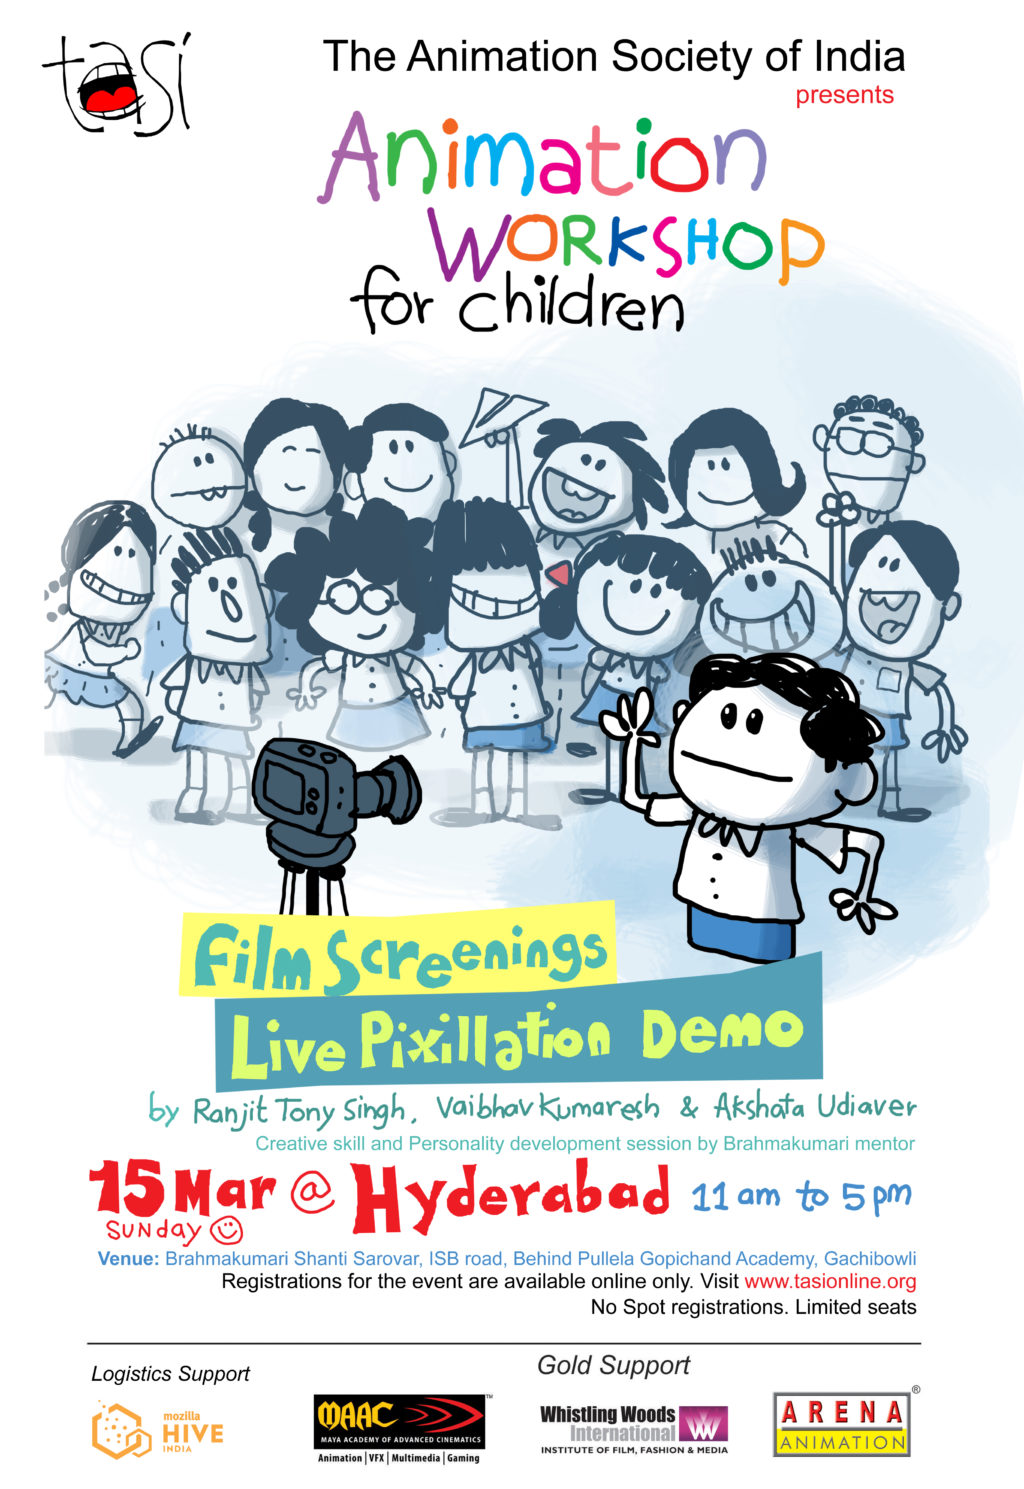 Hyderabad Children's Workshop